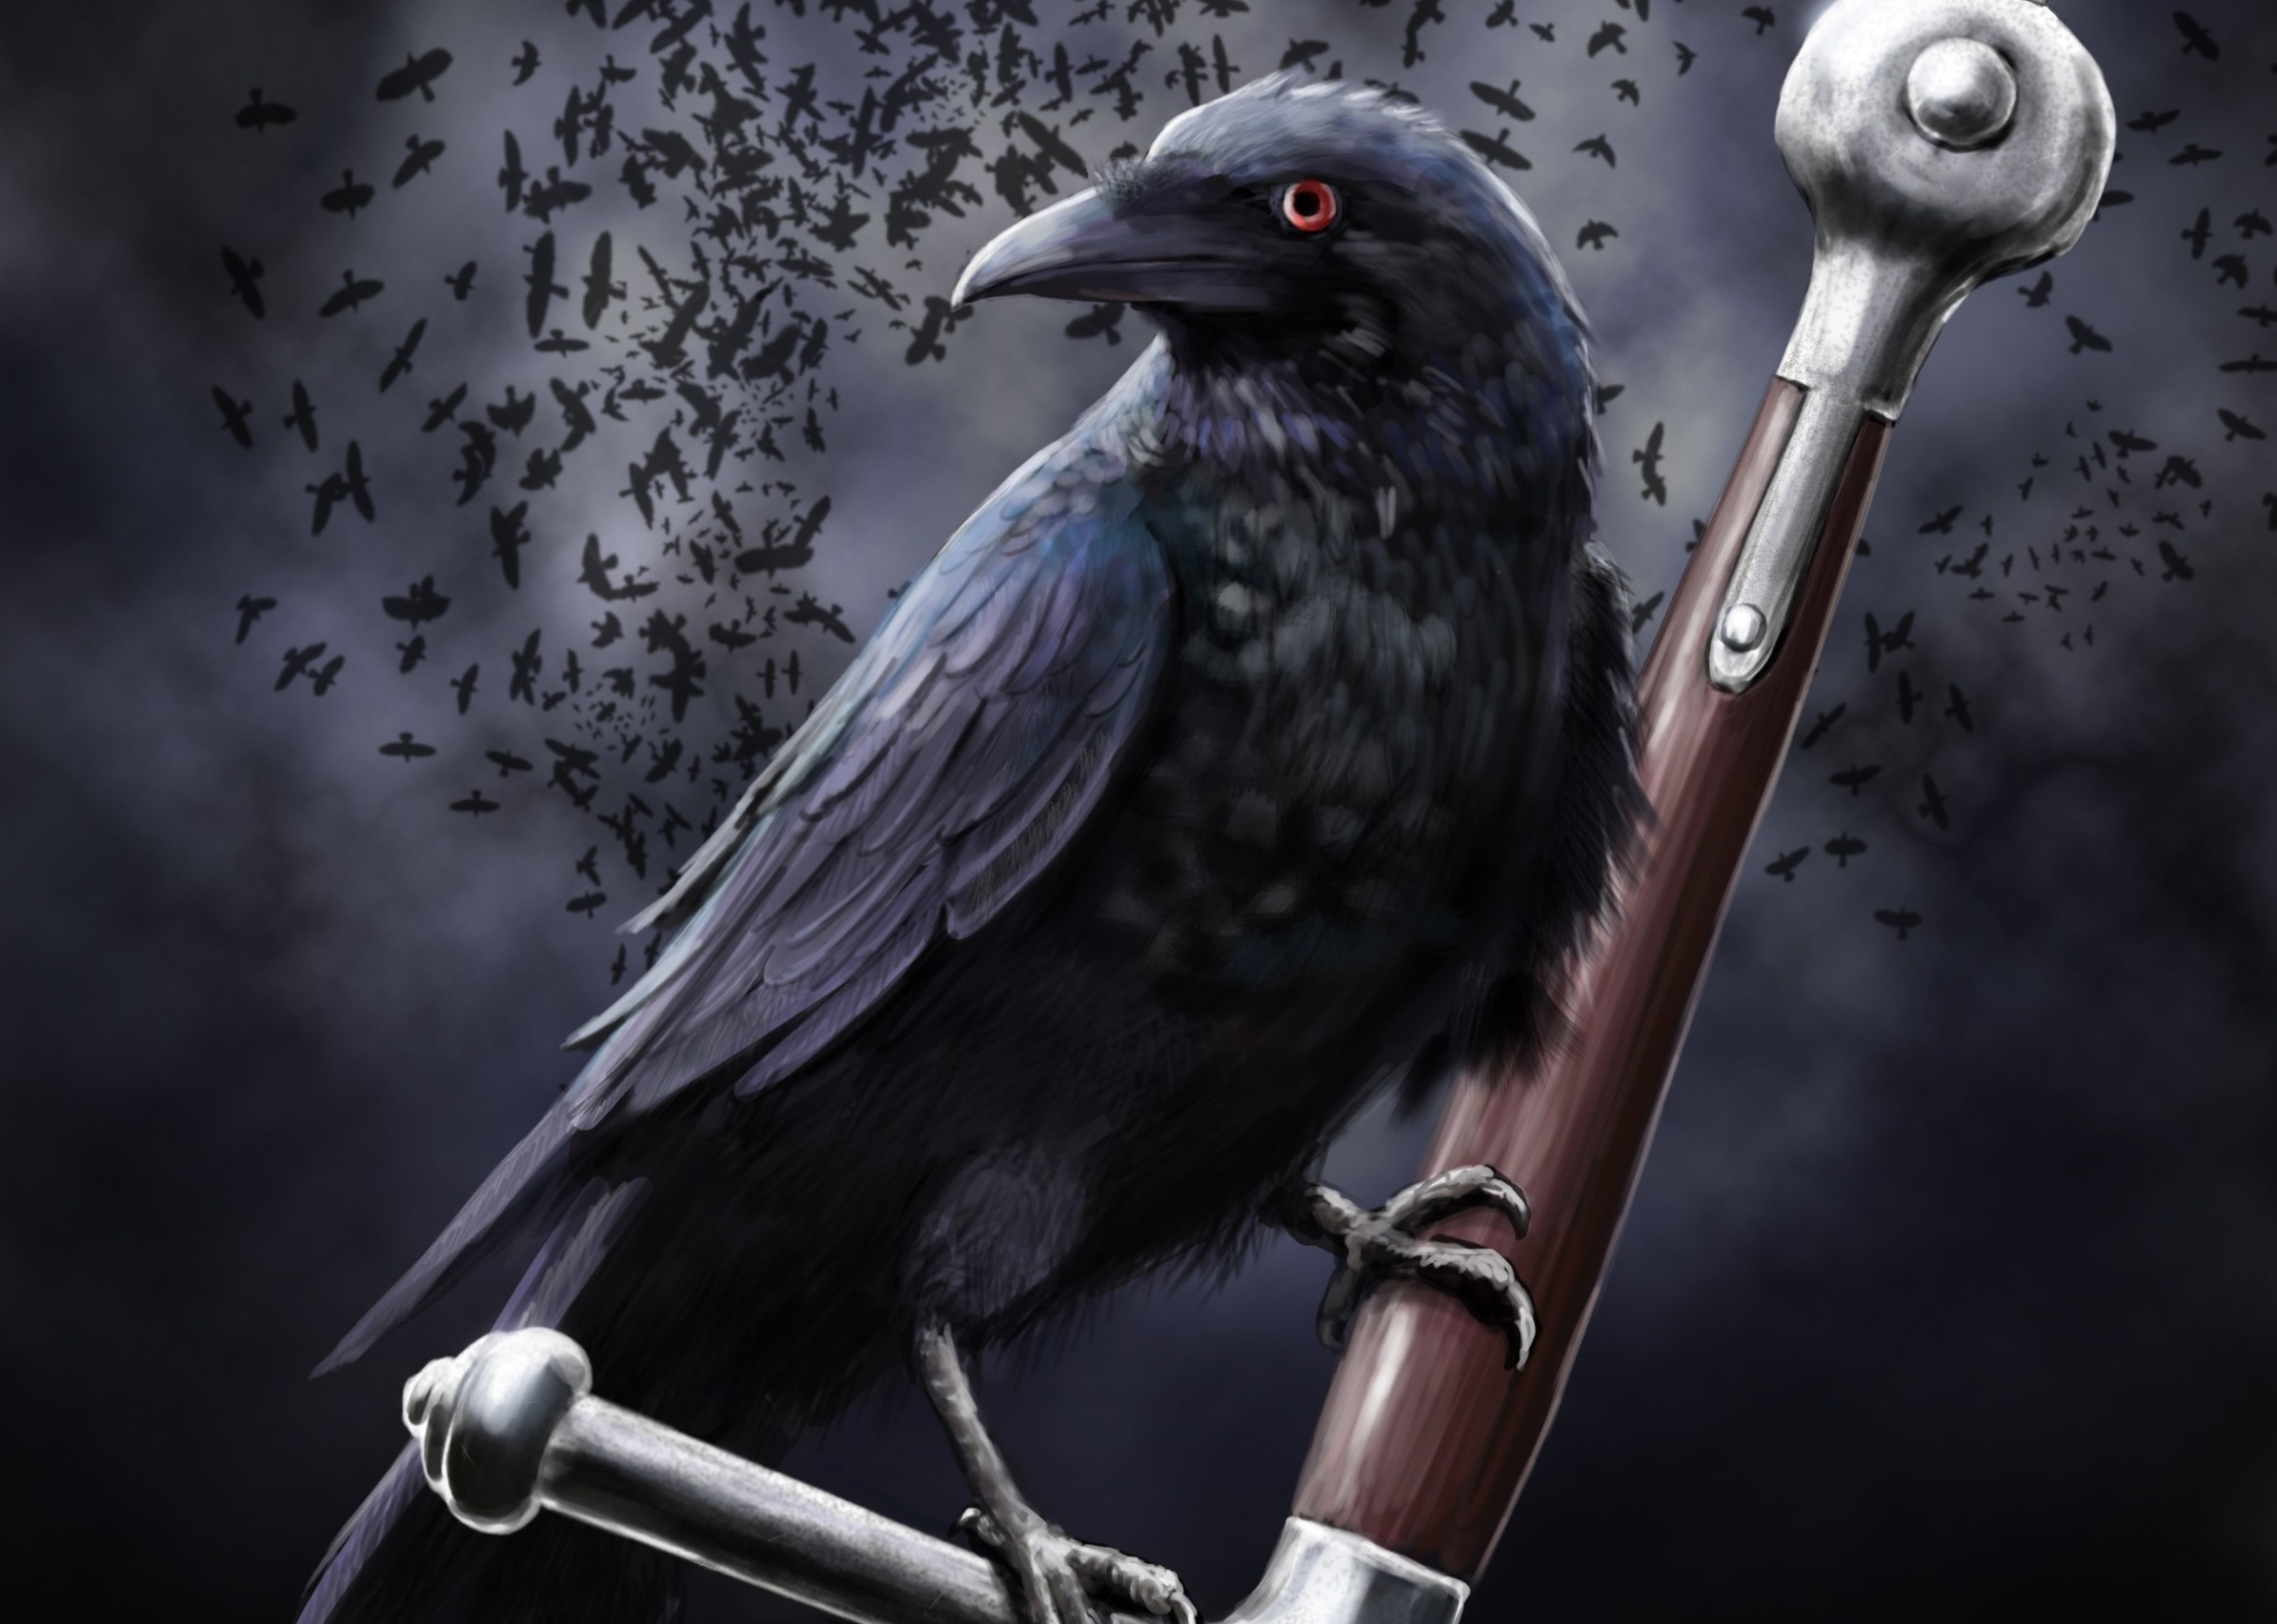 Evil crow wallpaper - photo#37